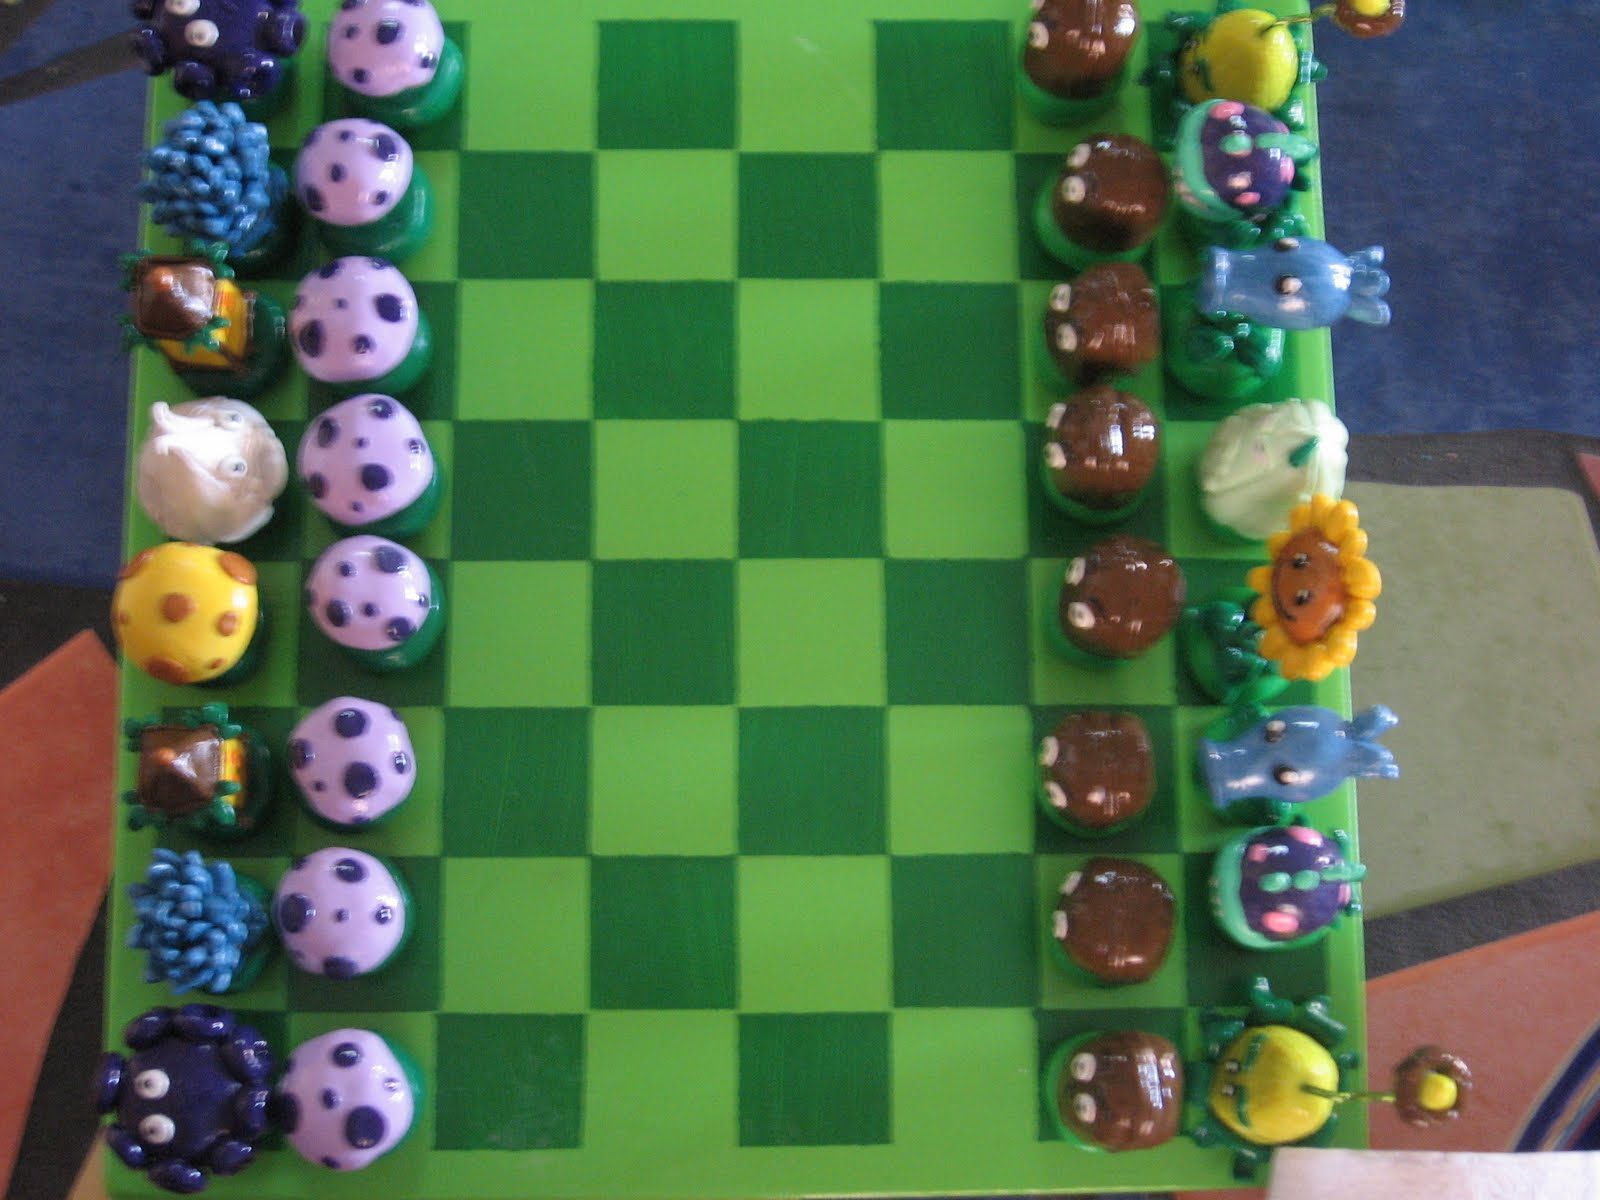 This is a chessboard themed after the online game plants vs zombies